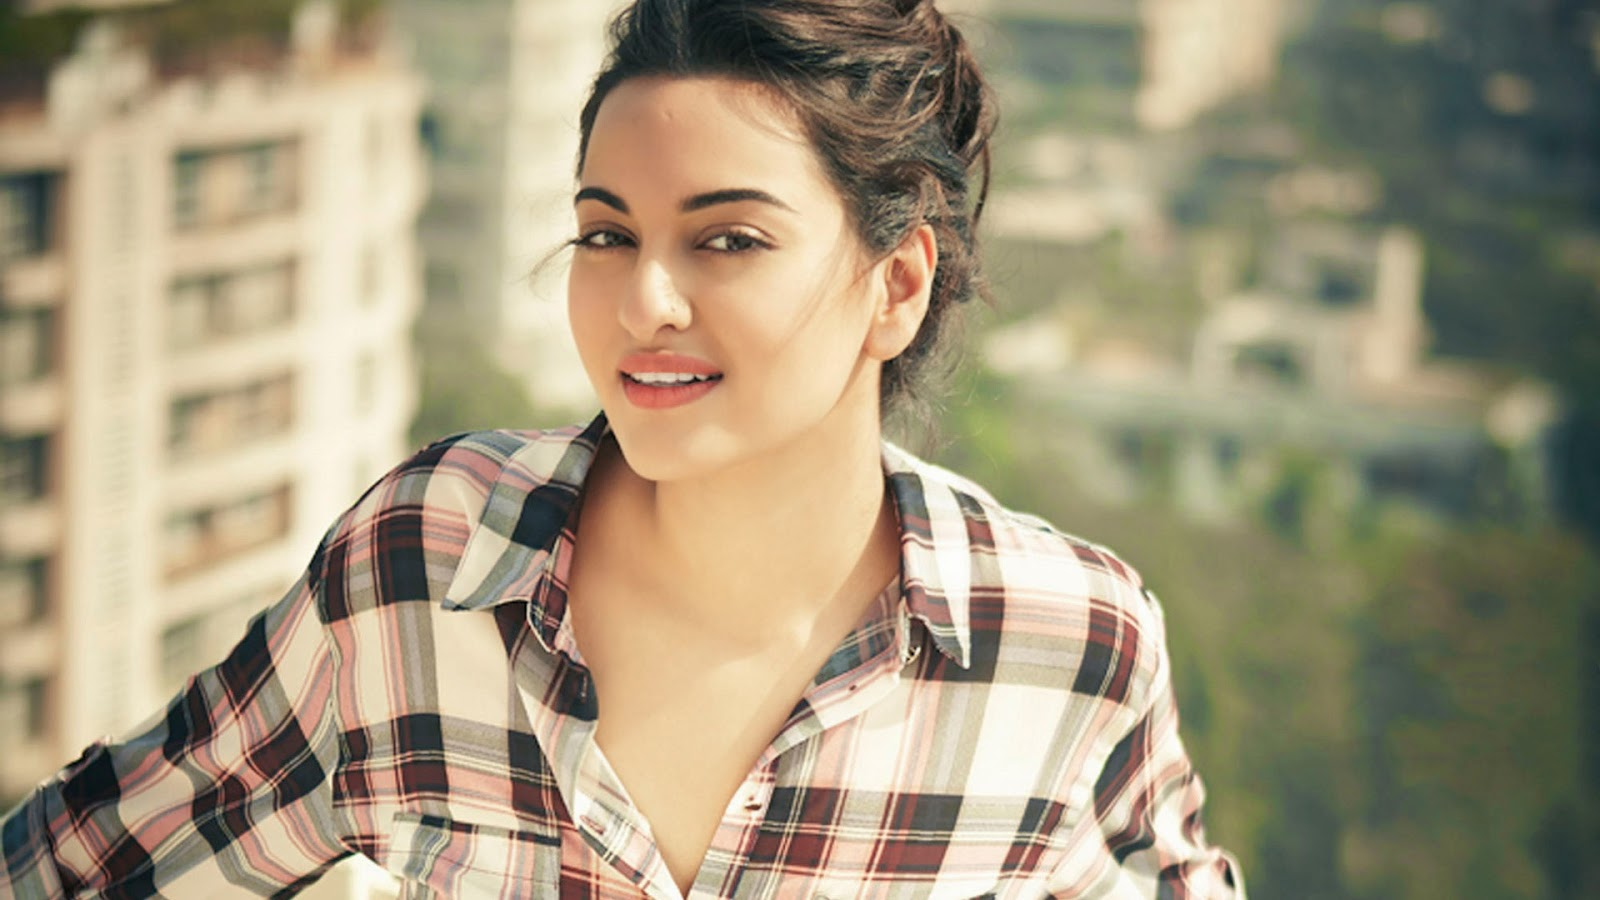 New Hindi Movei 2018 2019 Bolliwood: Upcoming Movies Of Sonakshi Sinha 2017-2018 With Release